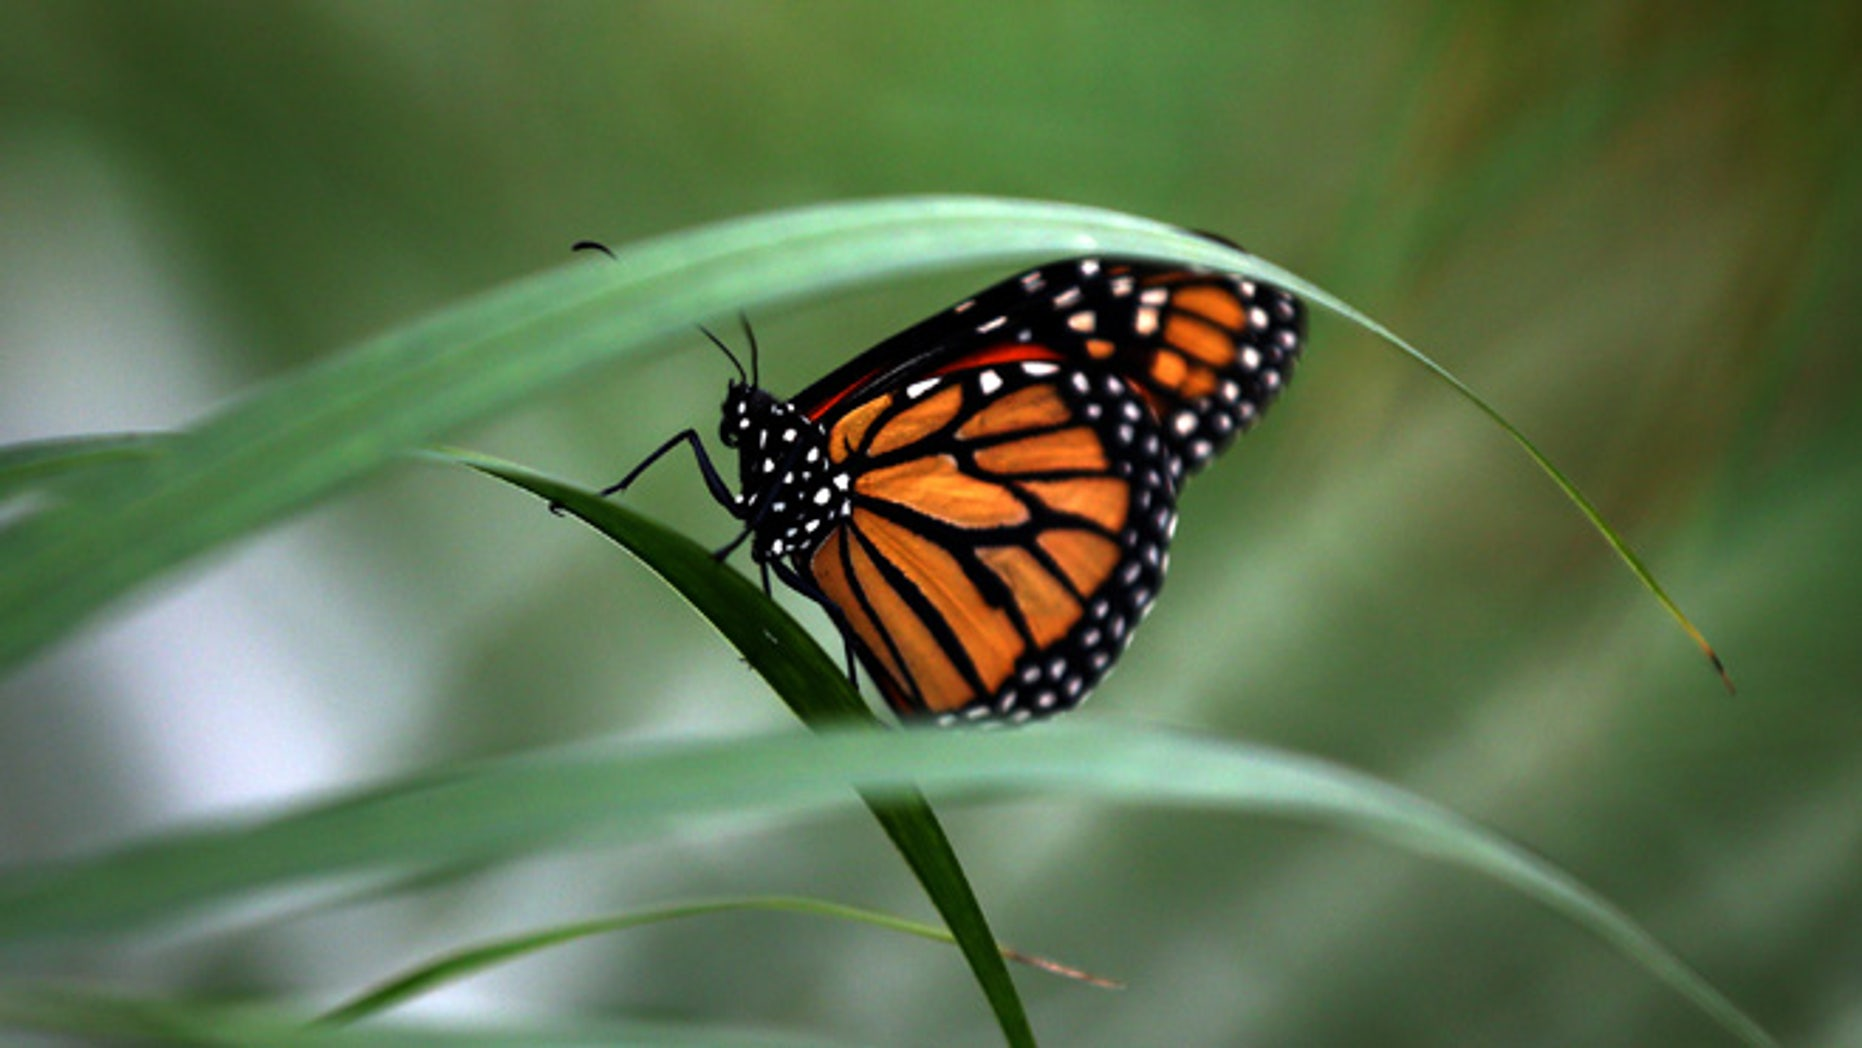 LONDON, ENGLAND - MARCH 31: A Large Tiger butterfly sits on a plant during a photocall to highlight the forthcoming 'Sensational Butterflies' exhibition at the Natural History Museum on March 31, 2015 in London, England. The exhibition will run from 2nd April to 13th September and features hundreds of tropical butterflies from around the world.  (Photo by Carl Court/Getty Images)